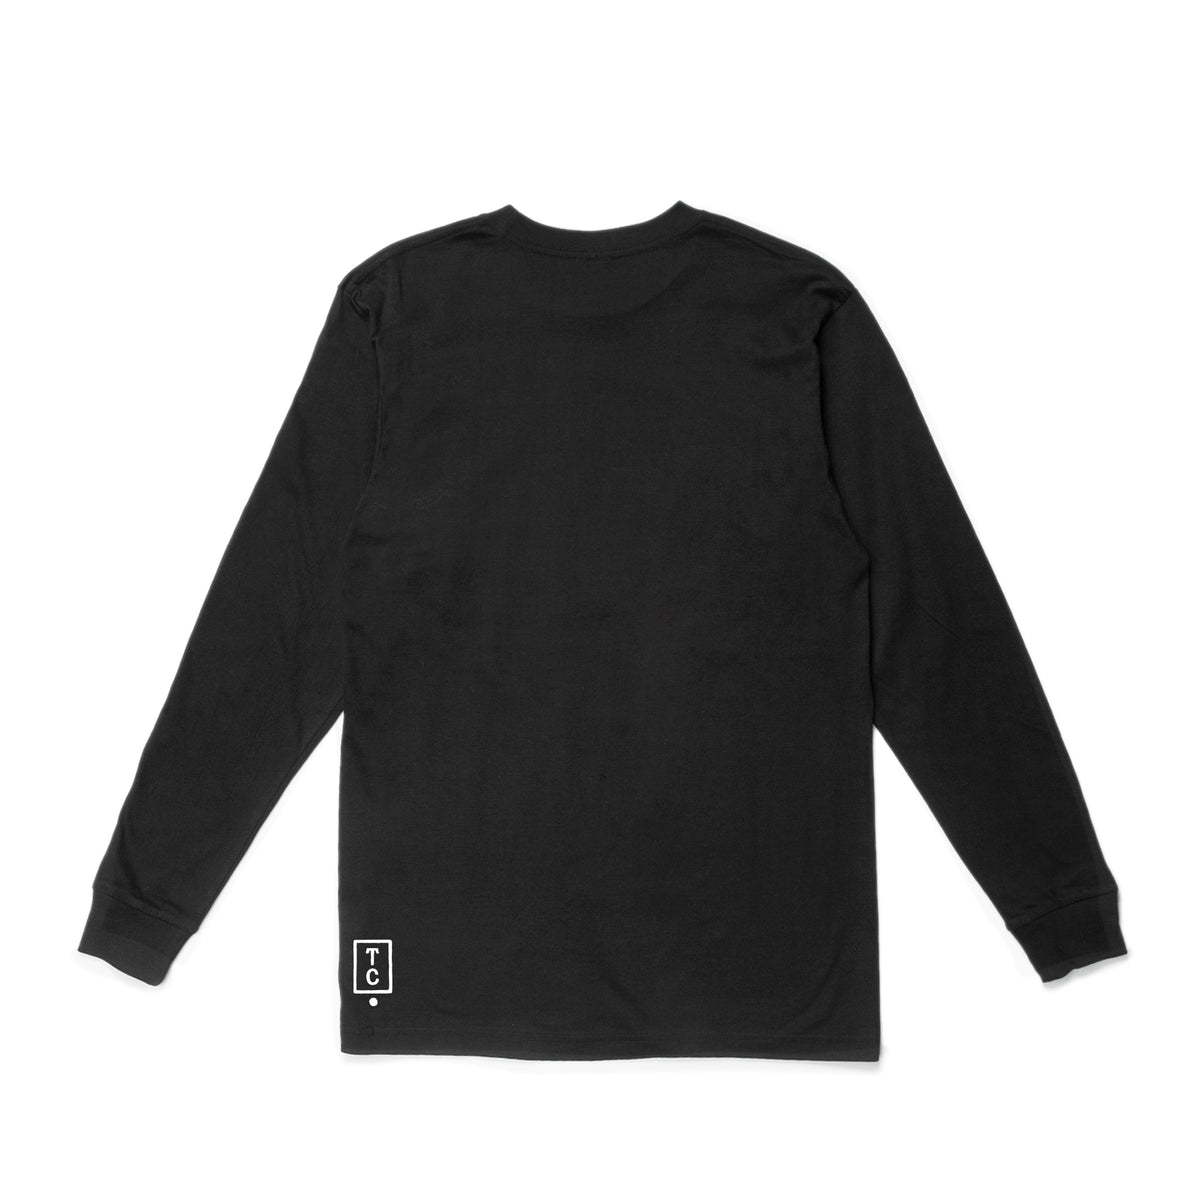 Superior LS Tee - Black